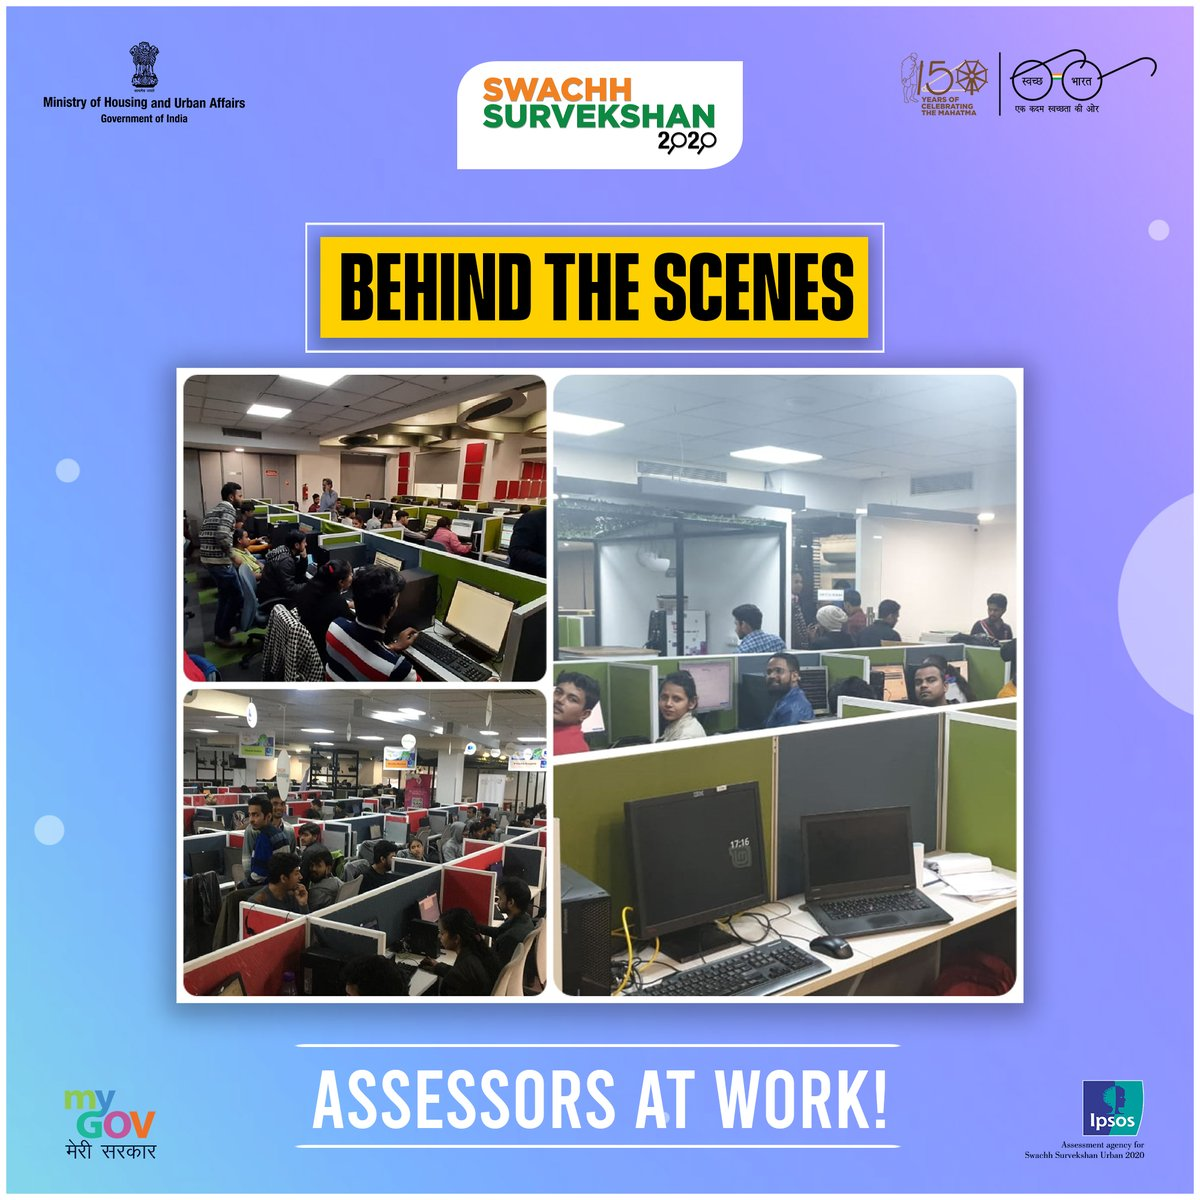 Take a peak #BehindTheScenes of #SwachhSurvekshan2020.  Our assessors at work! After all, there are more than 4.5 lacs documents to be assessed.  #SwachhBharat #BTS https://t.co/zU3xfsmMgx